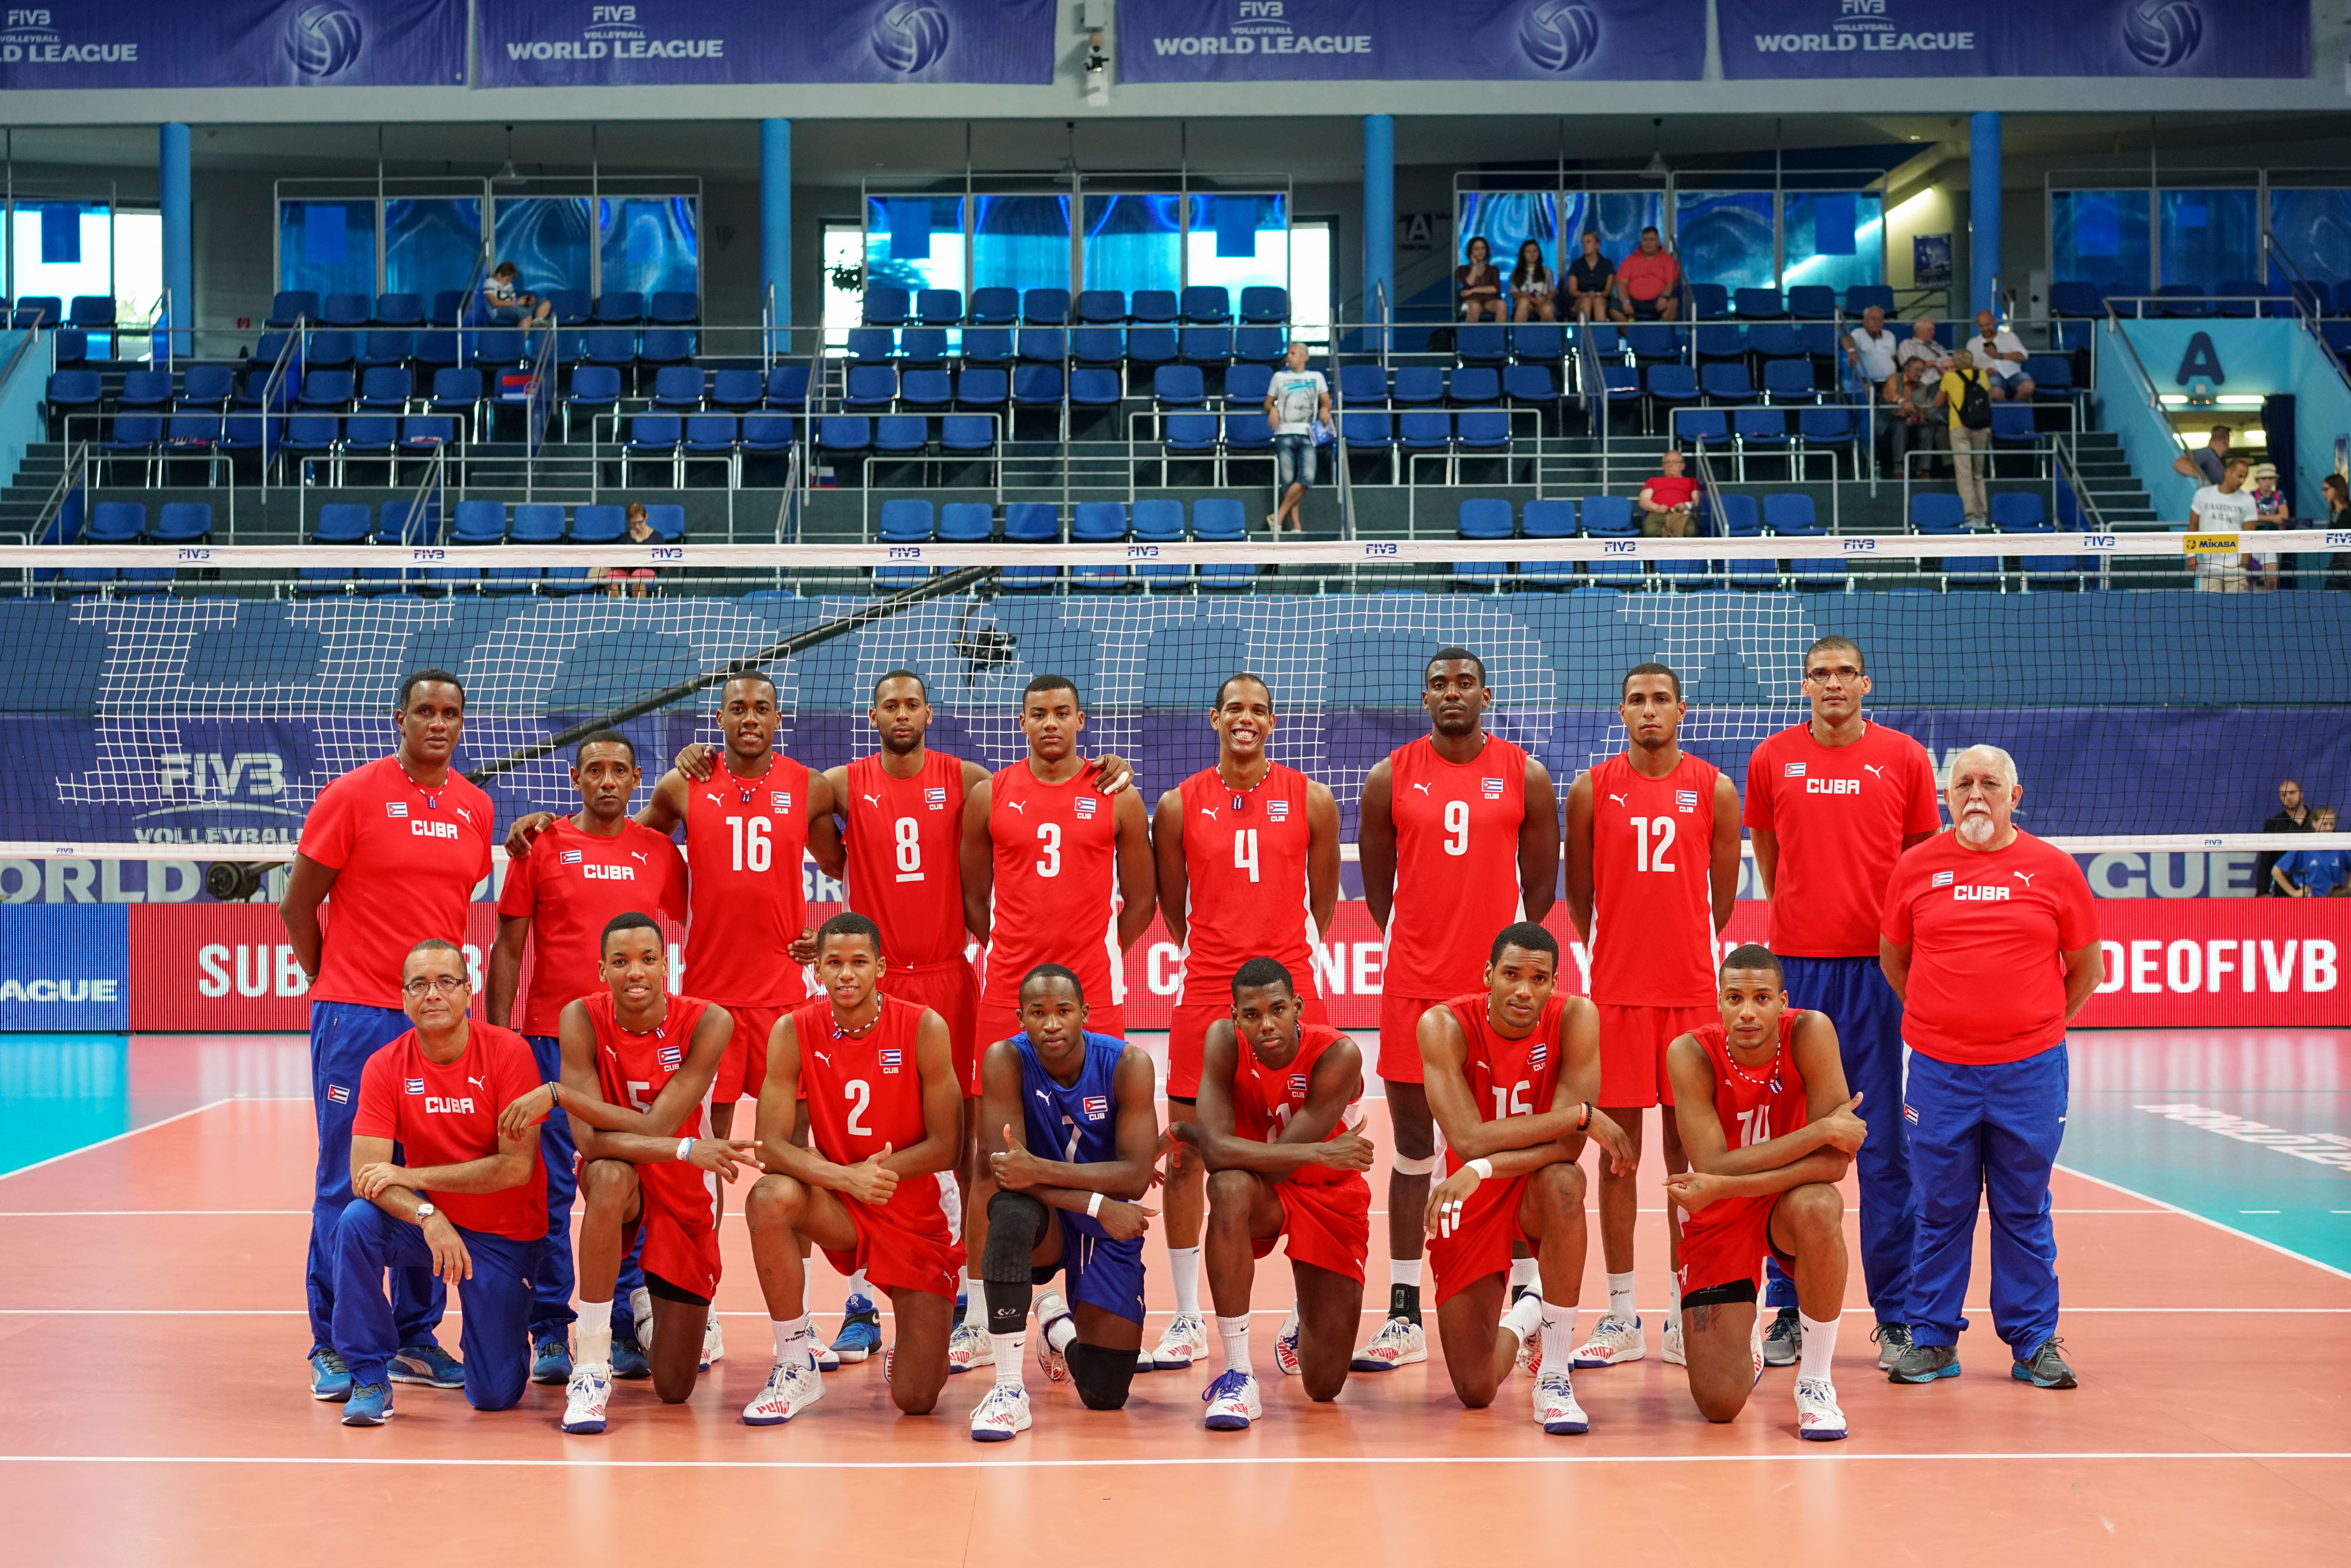 Overview - Cuba - FIVB Volleyball World League 2016